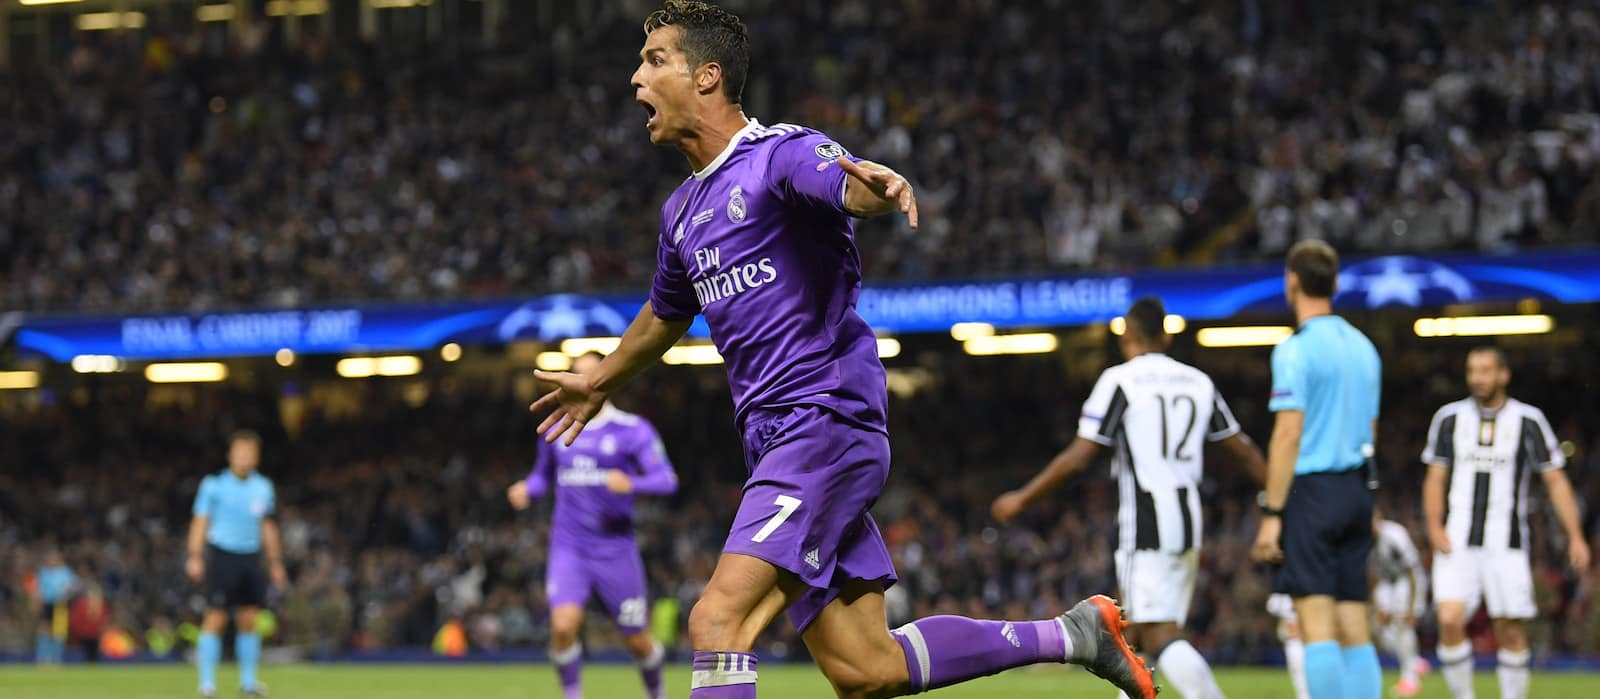 Manchester United fans delighted by prospect of Cristiano Ronaldo leaving Real Madrid